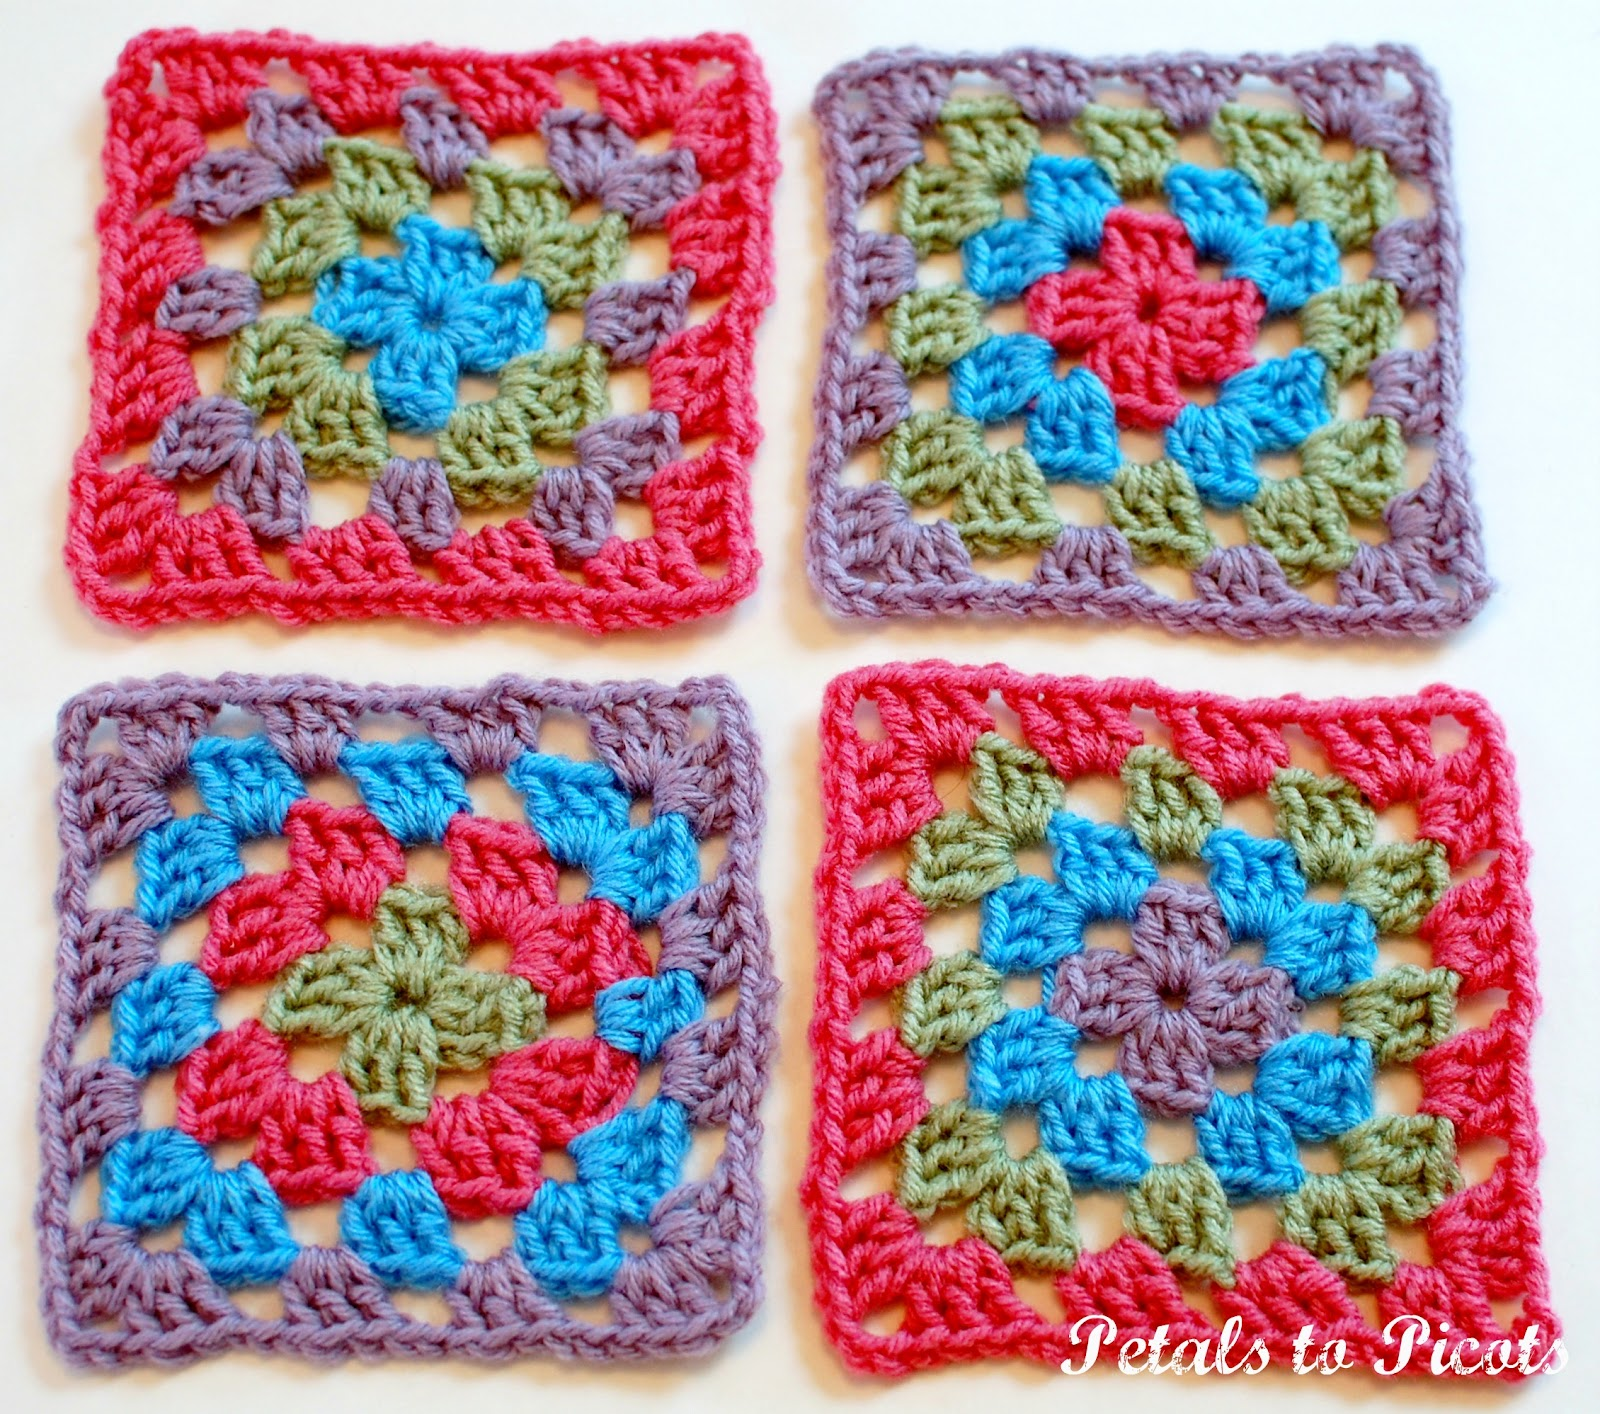 Crochet Basic Granny Square Tutorial : How to Crochet a Classic Granny Square: Granny Square ...